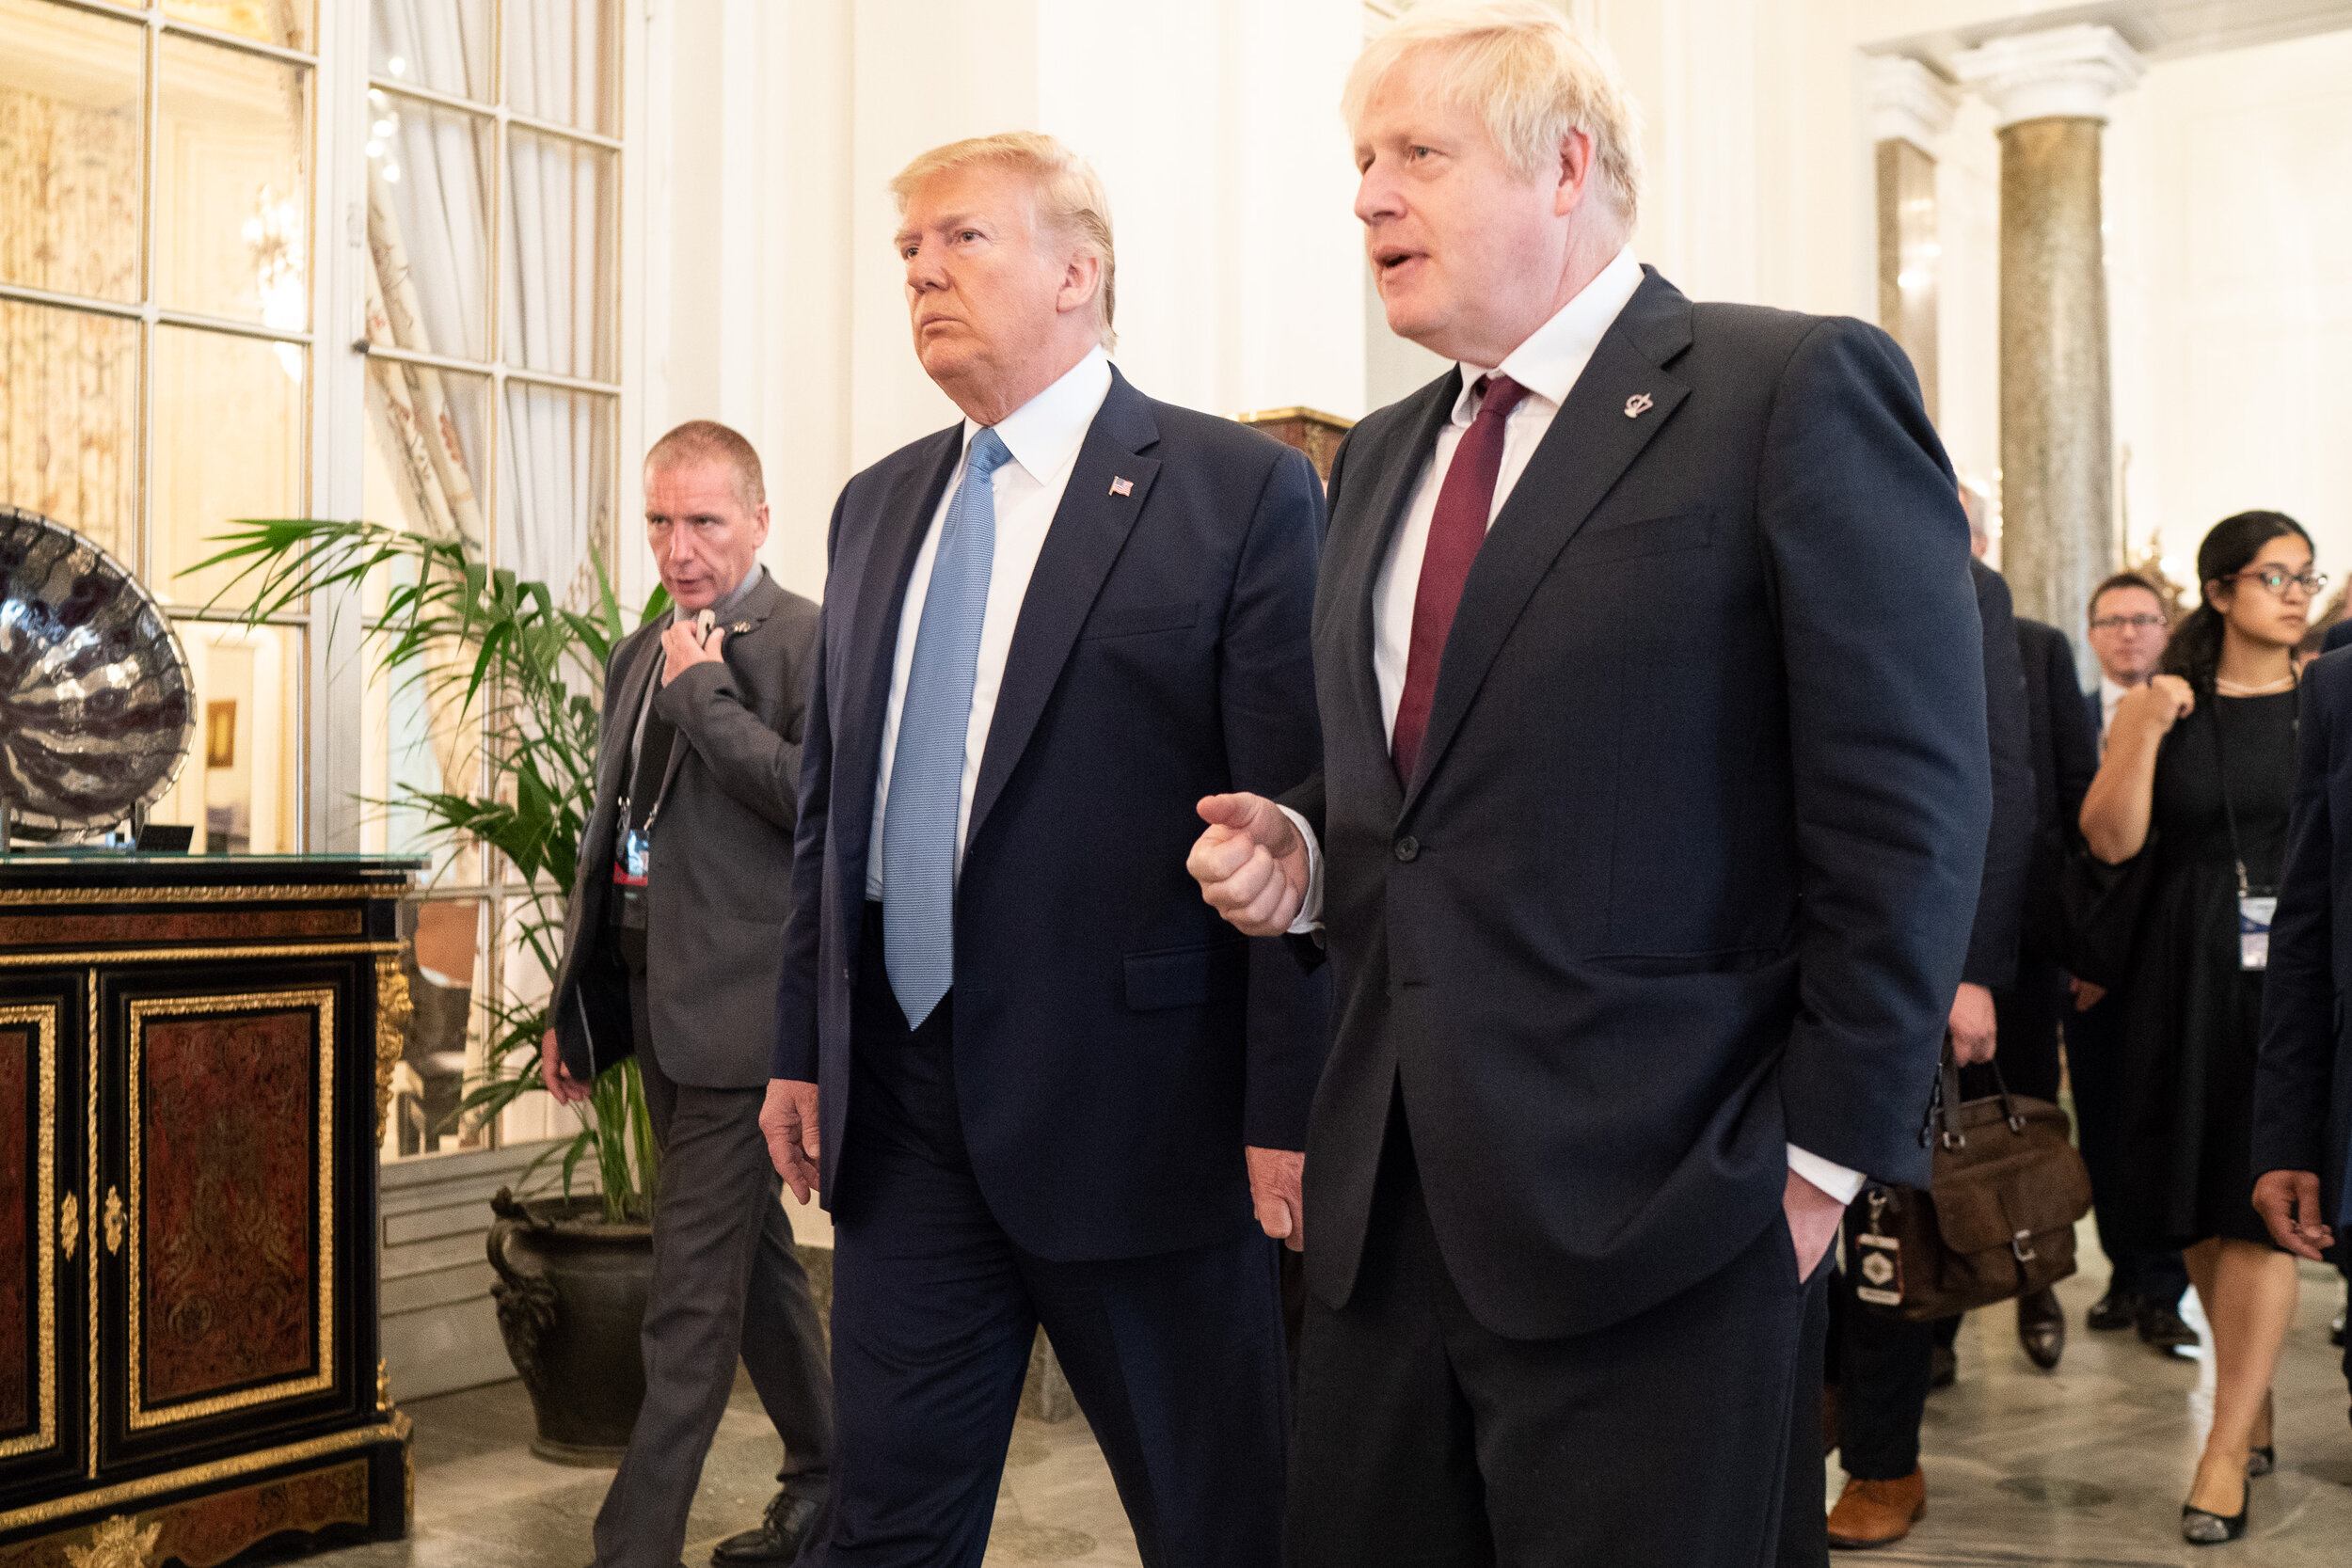 'The things we did last summer': President Donald J. Trump and British Prime Minister Boris Johnson at the G7 in Biarritz, France Aug. 25.. Official White House photograph by Shealah Craighead.